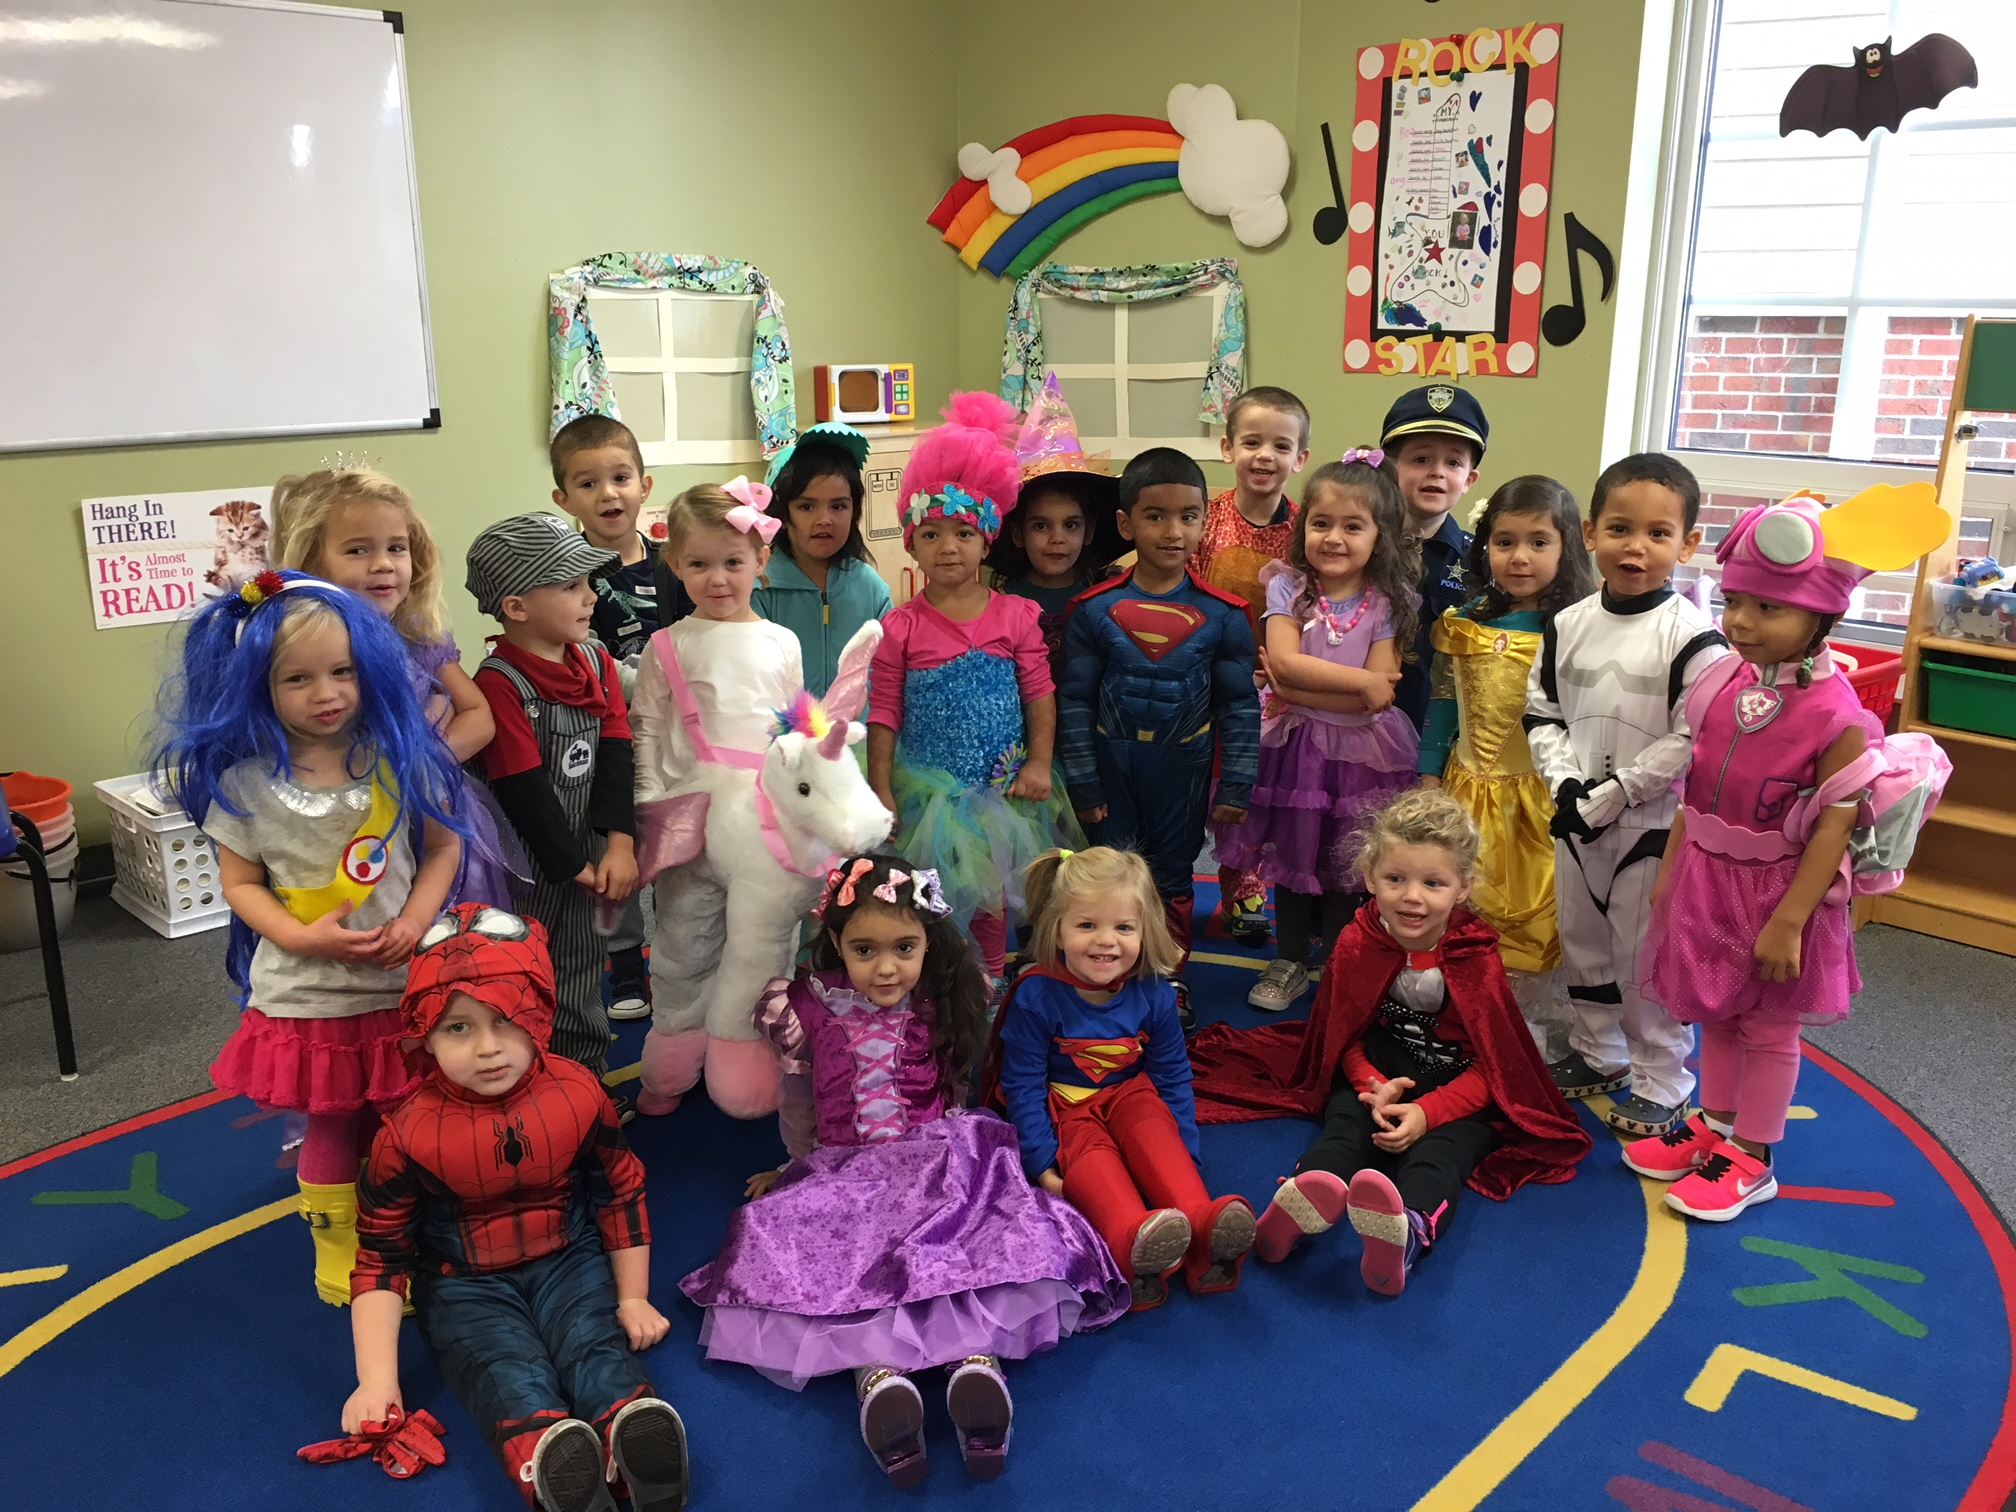 Growing Tree Preschool poses for a photo on Halloween.